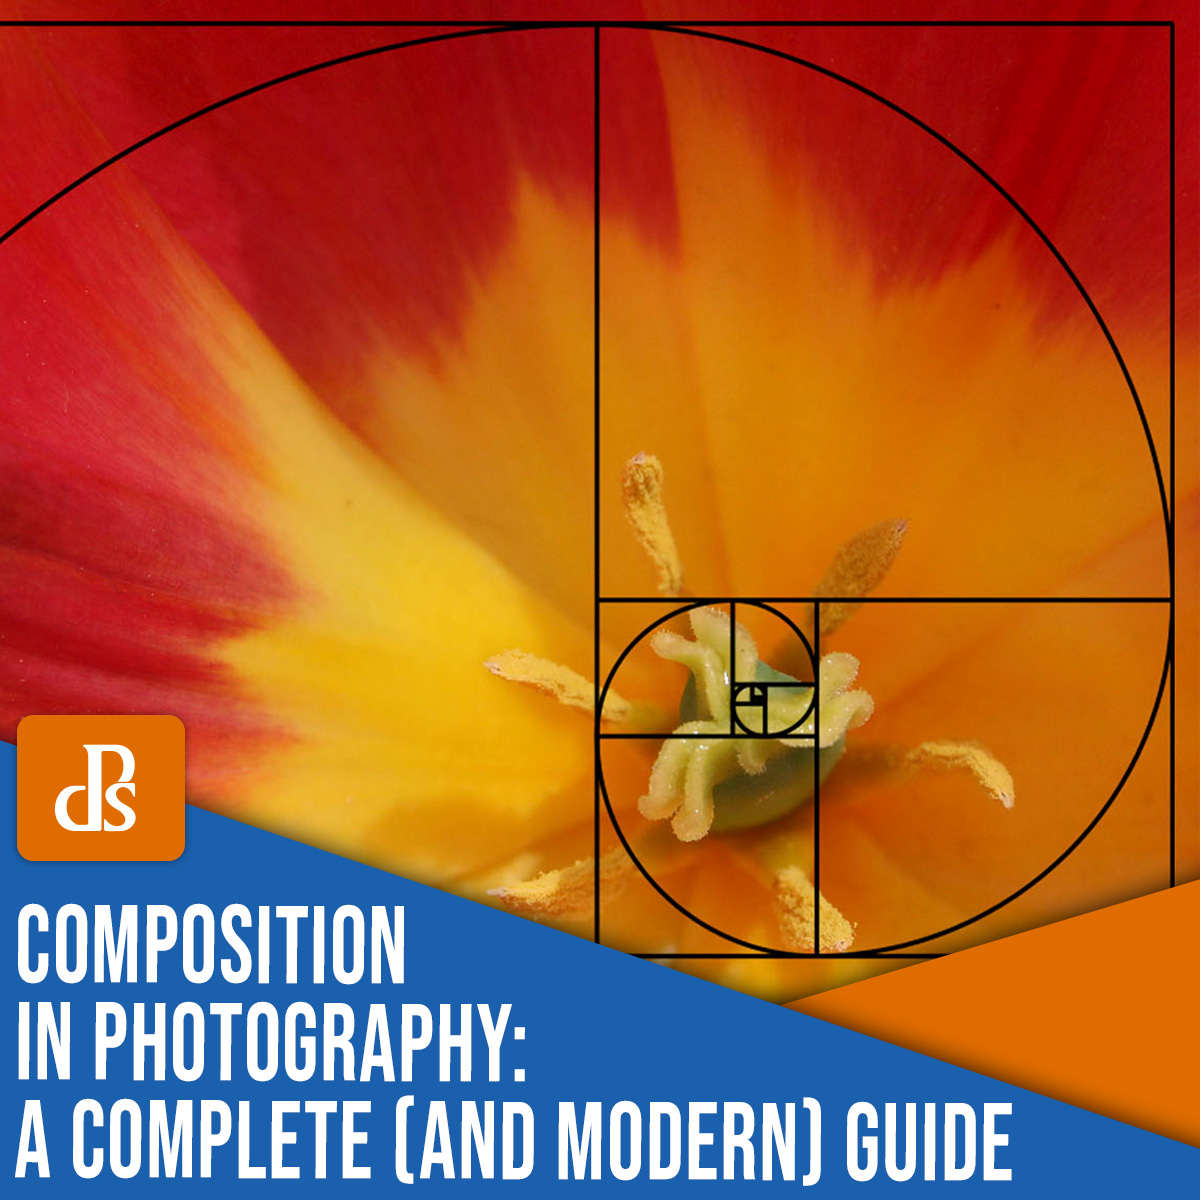 composition in photography: a complete (and modern) guide